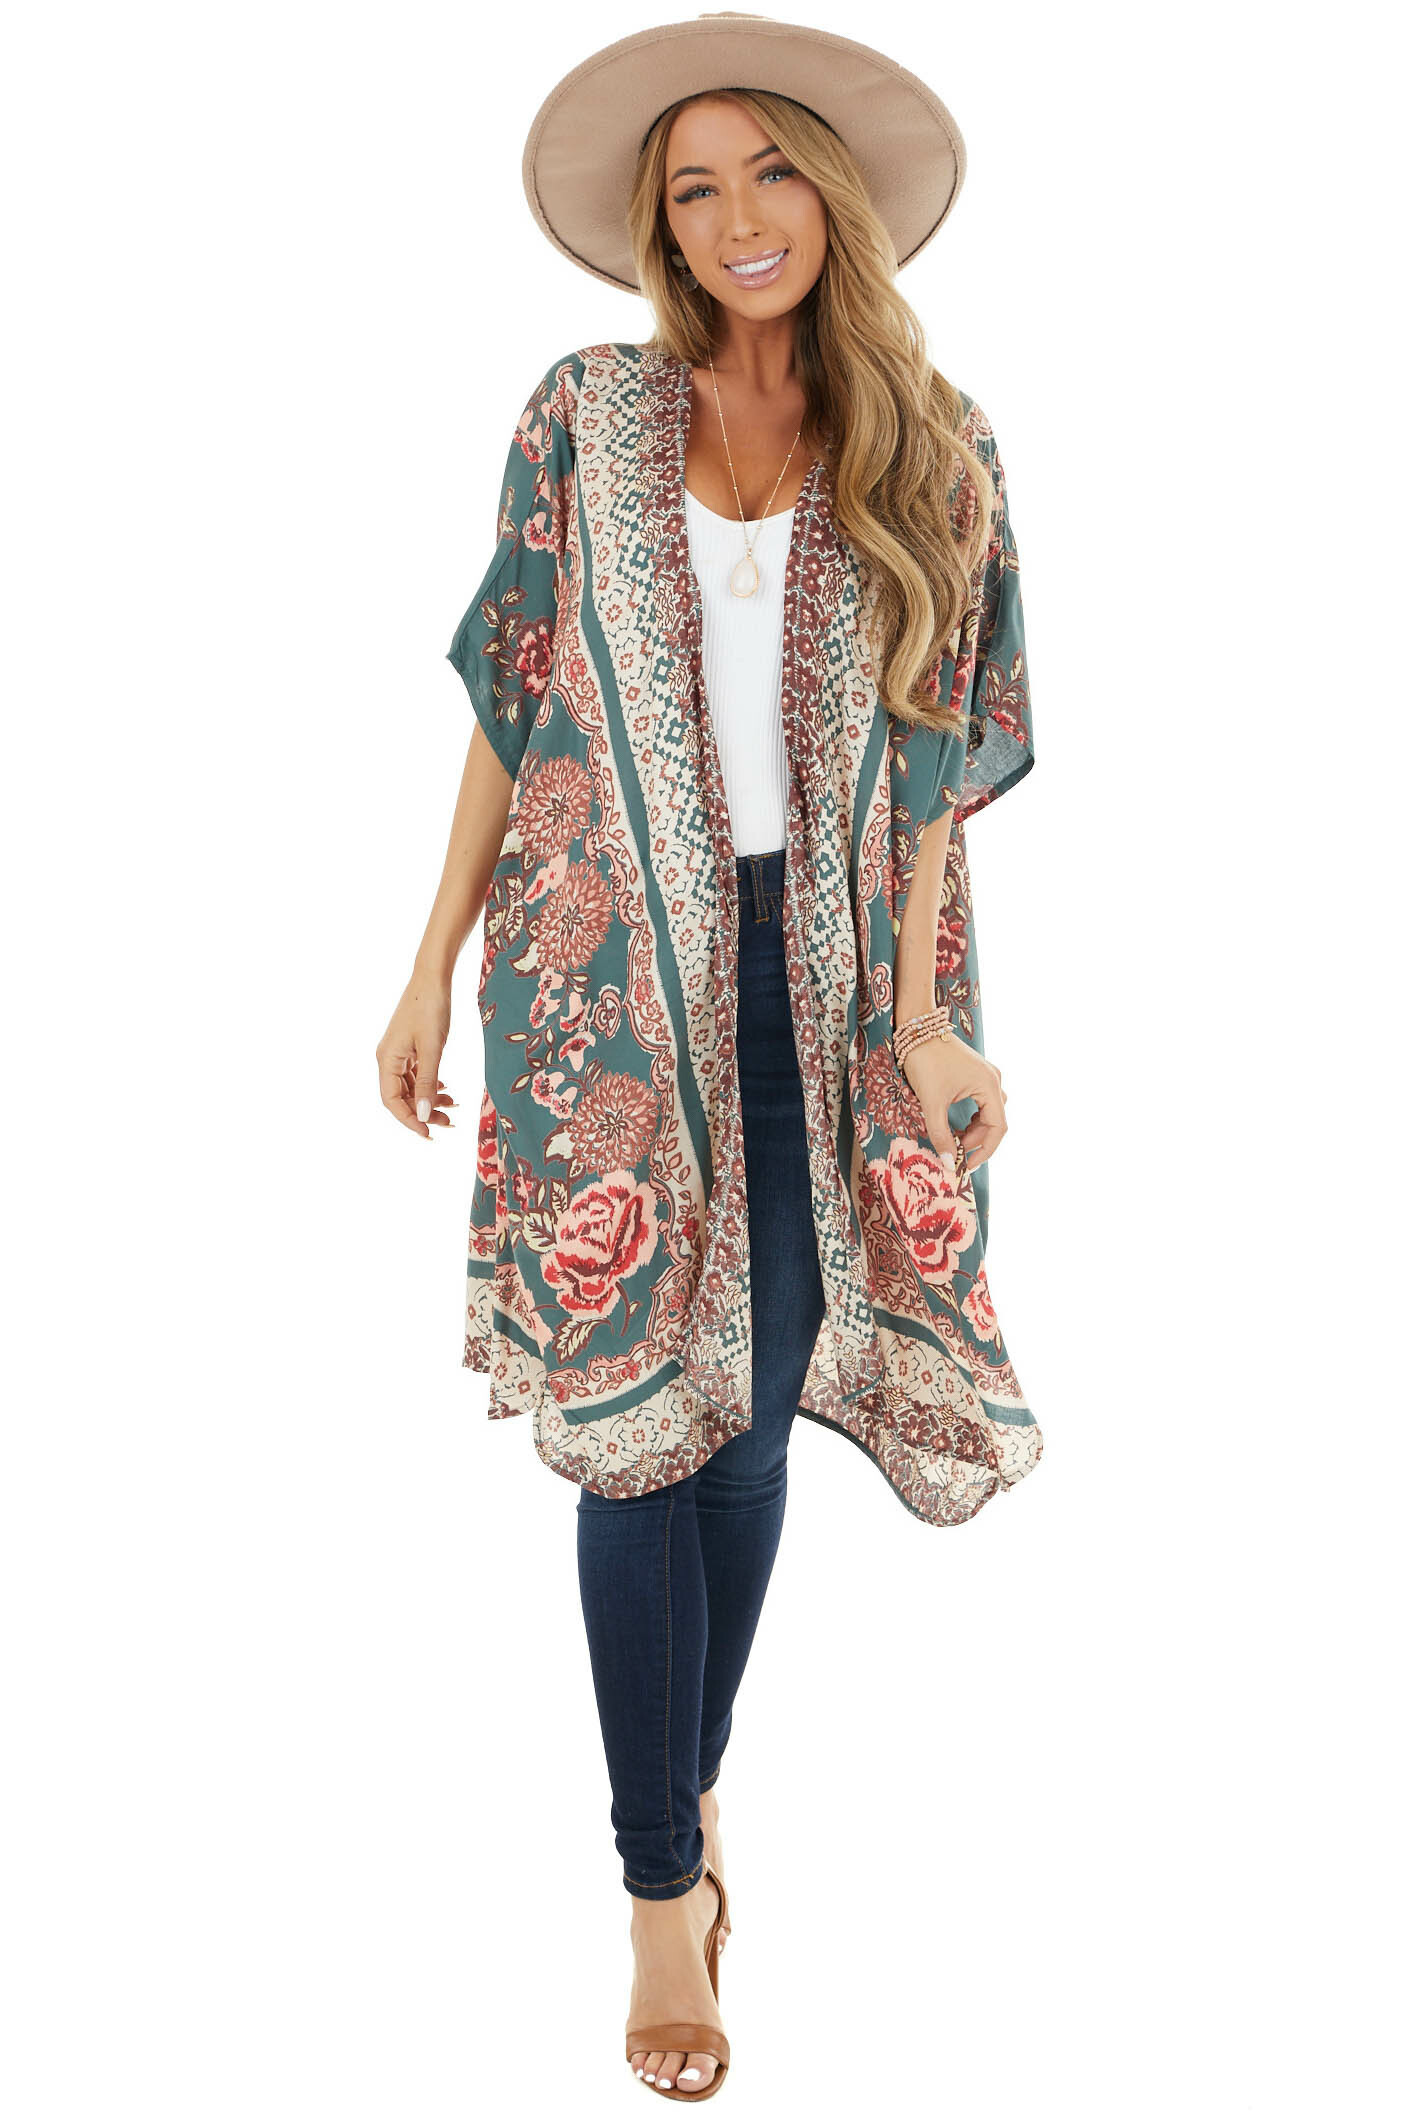 Dark Teal and Cocoa Floral Print Kimono with Short Sleeves